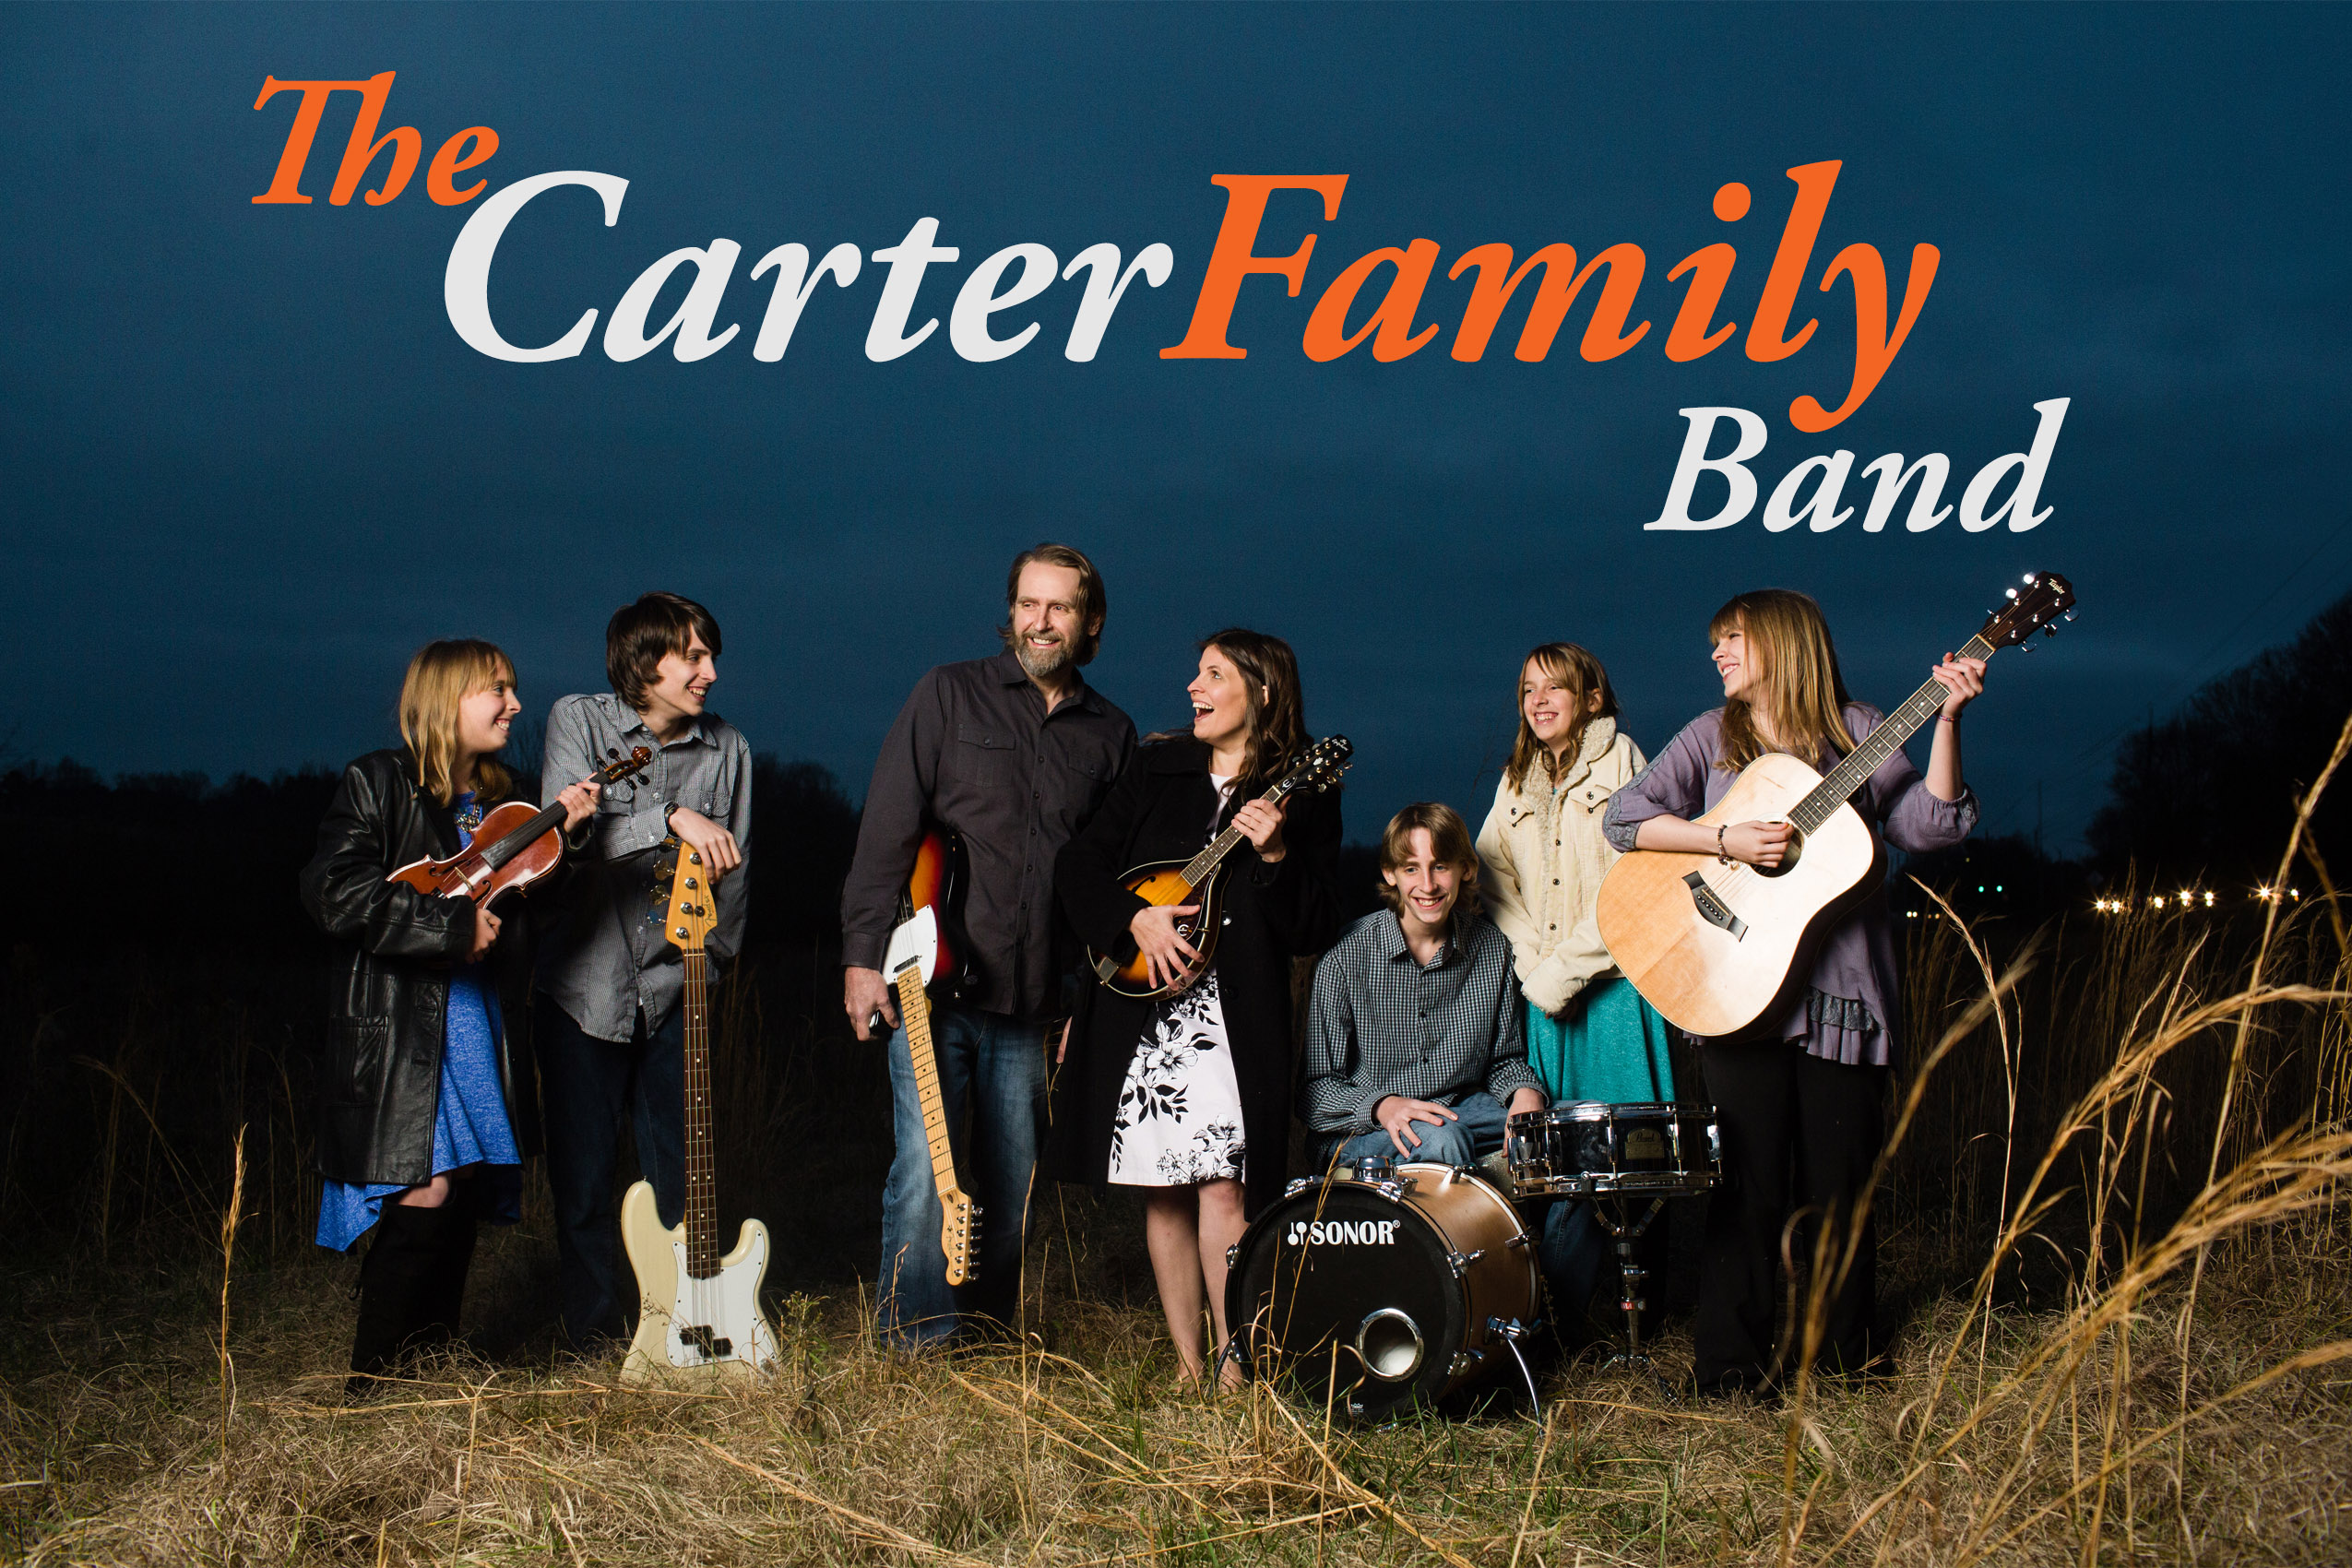 The Carter Family Band